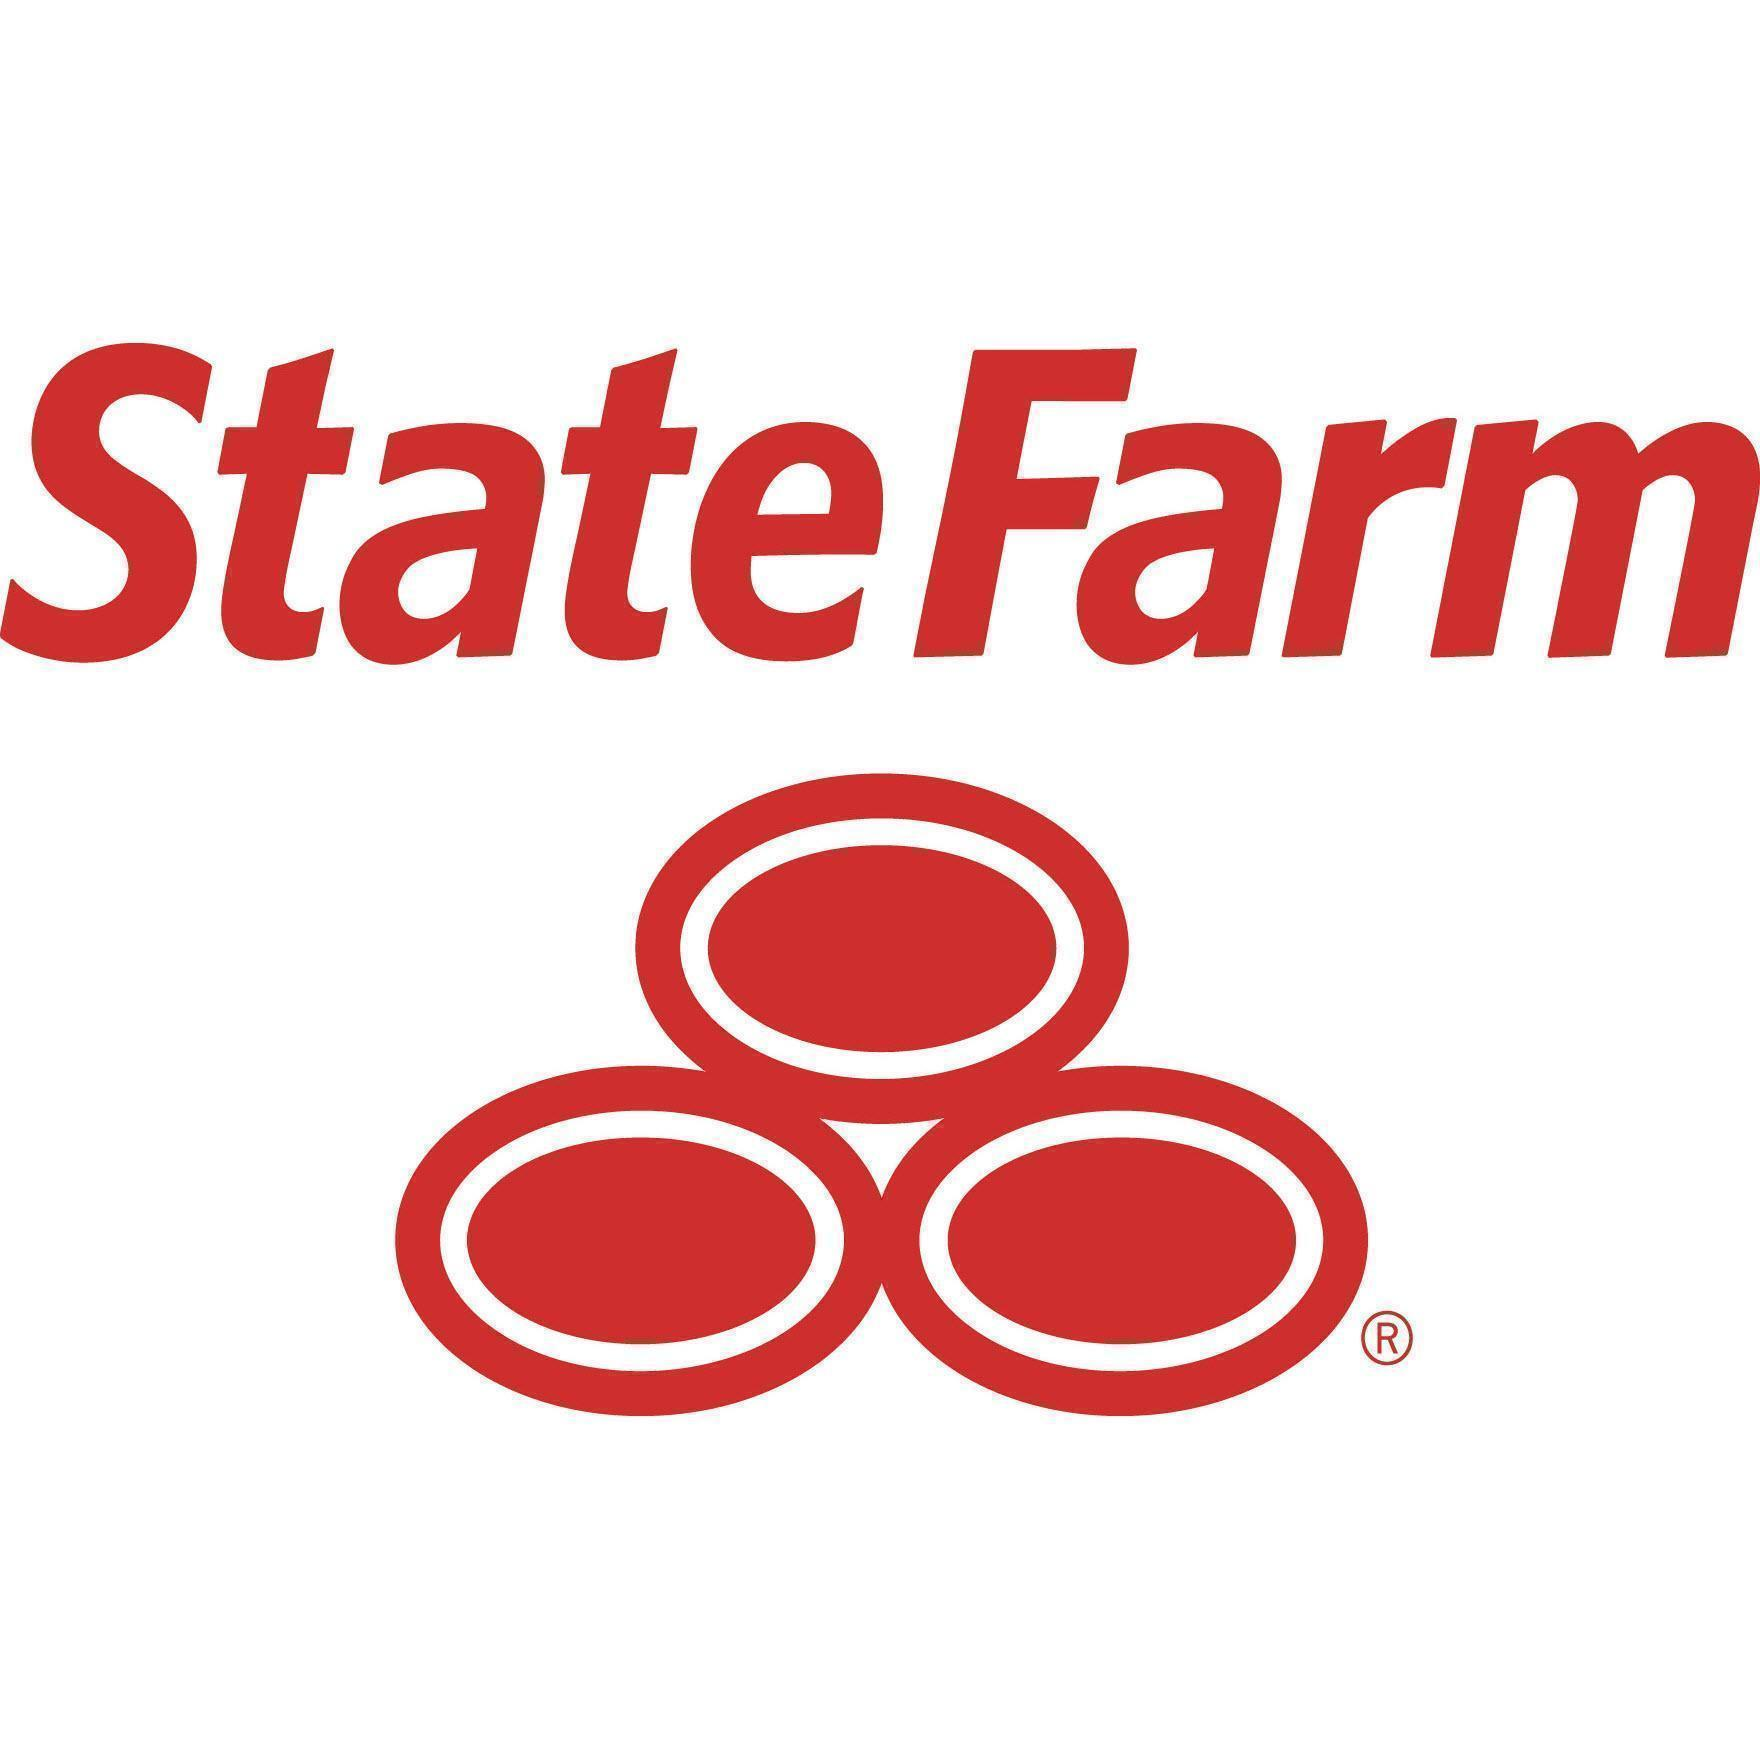 Walter Ciucevich - State Farm Insurance Agent